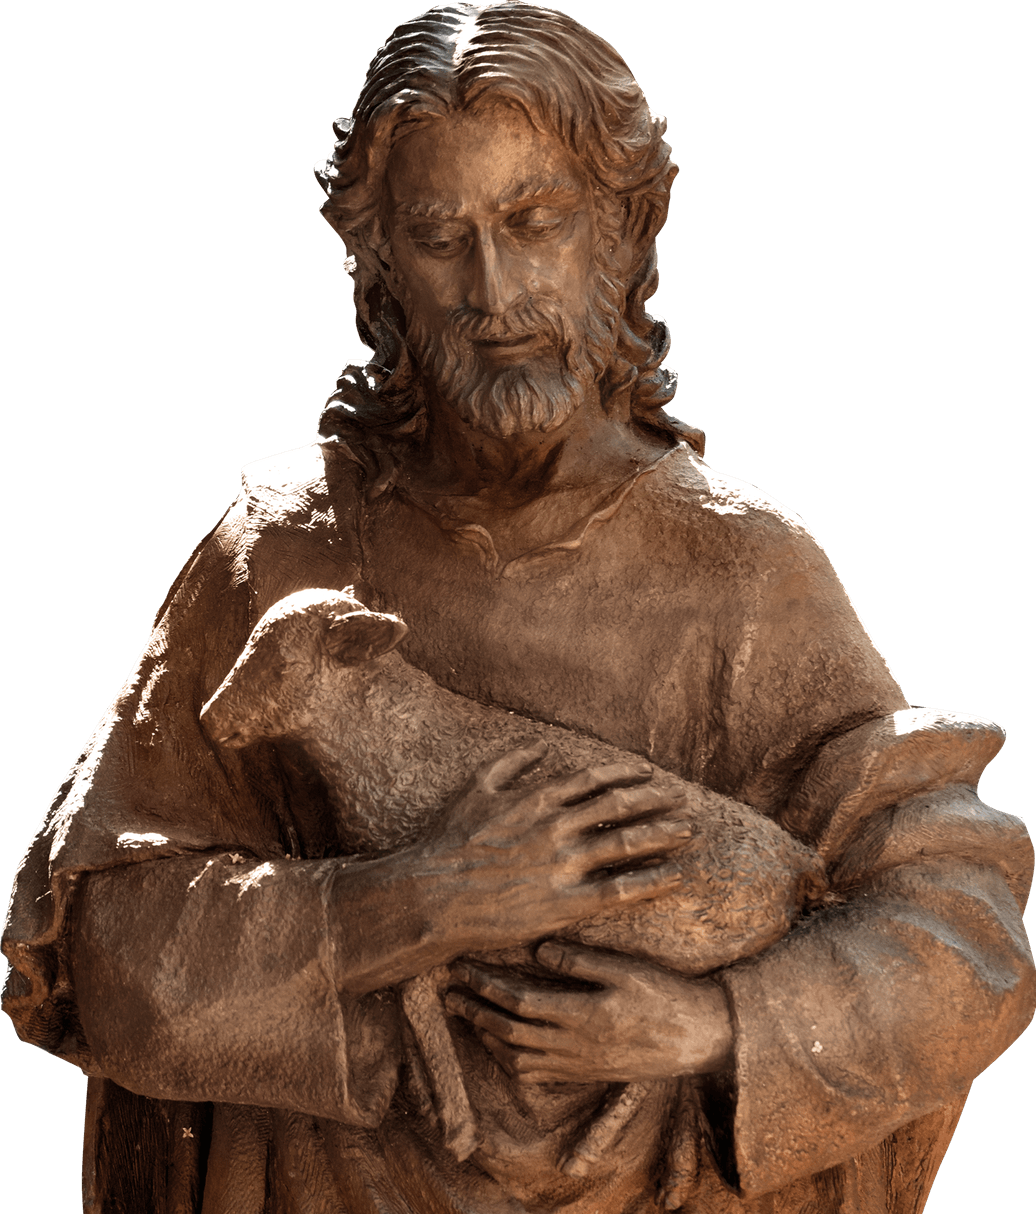 jesus-christ-good-shepherd-religion-161289-1.png